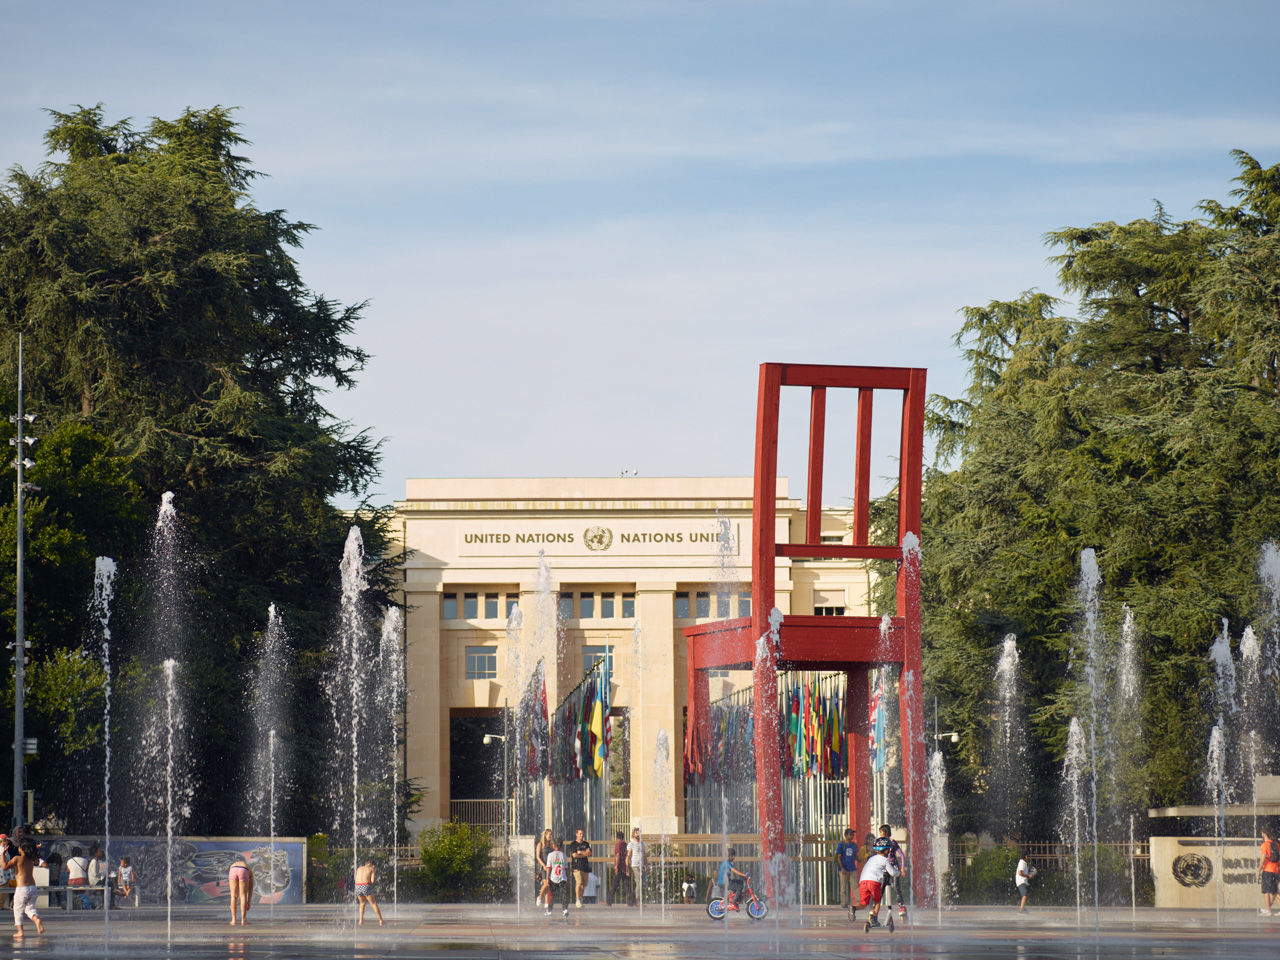 Palais des Nations, the United Nations in Geneva